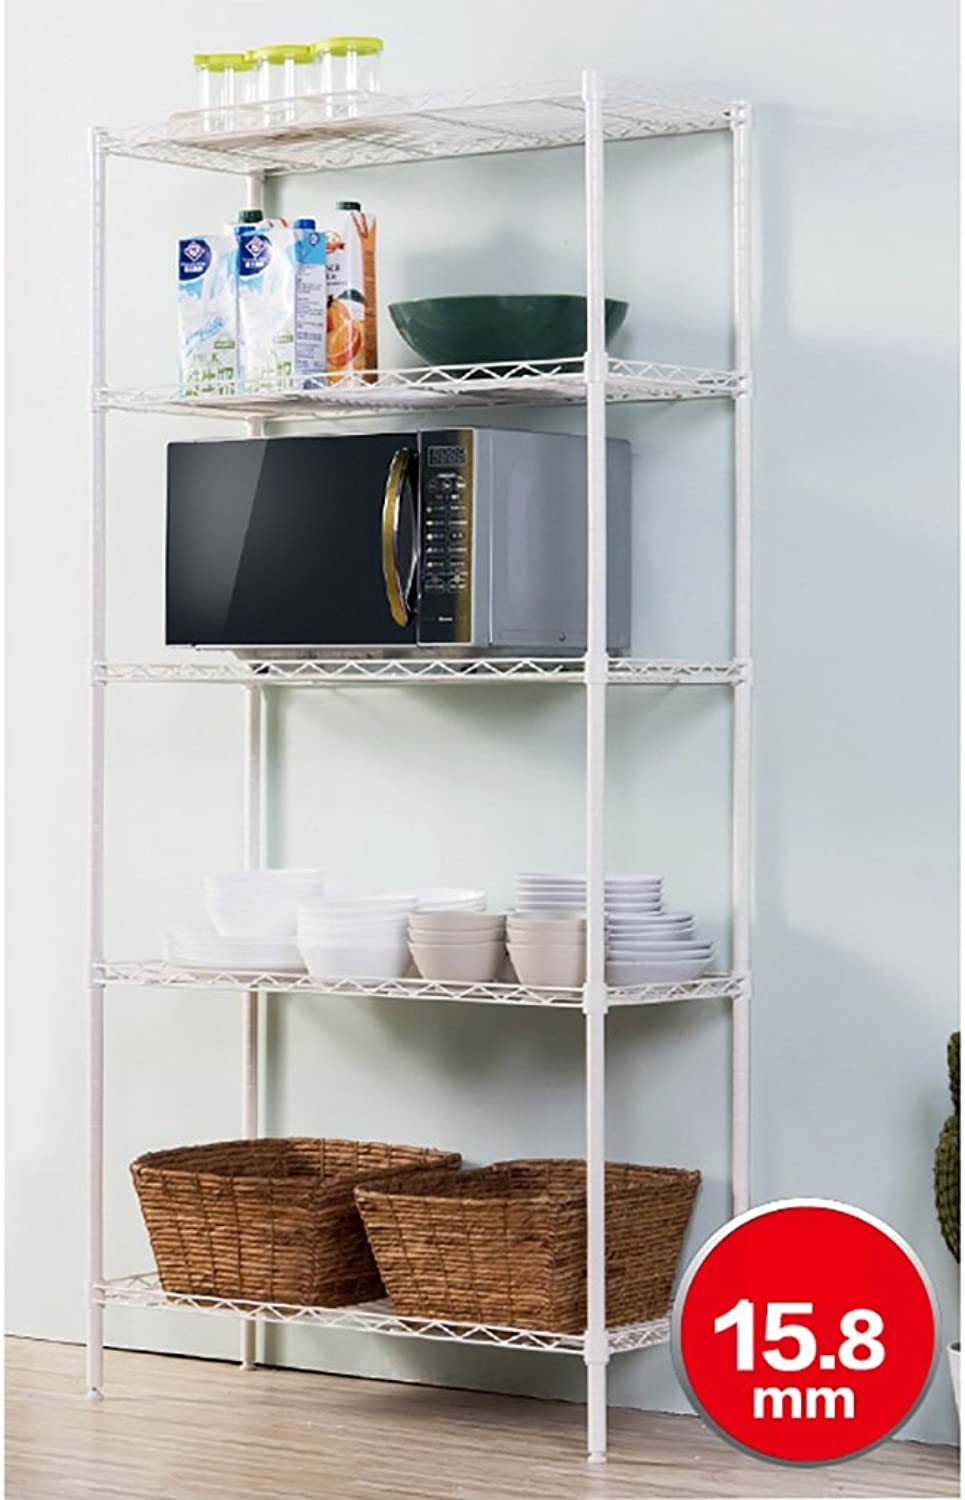 Kitchen Shelf Kitchen Shelf Shelf Steel Rack Finishing Frame Storage Shelves Layers Shelf Waterproof and Durable Kitchen Storage Racks (color   Ivory)